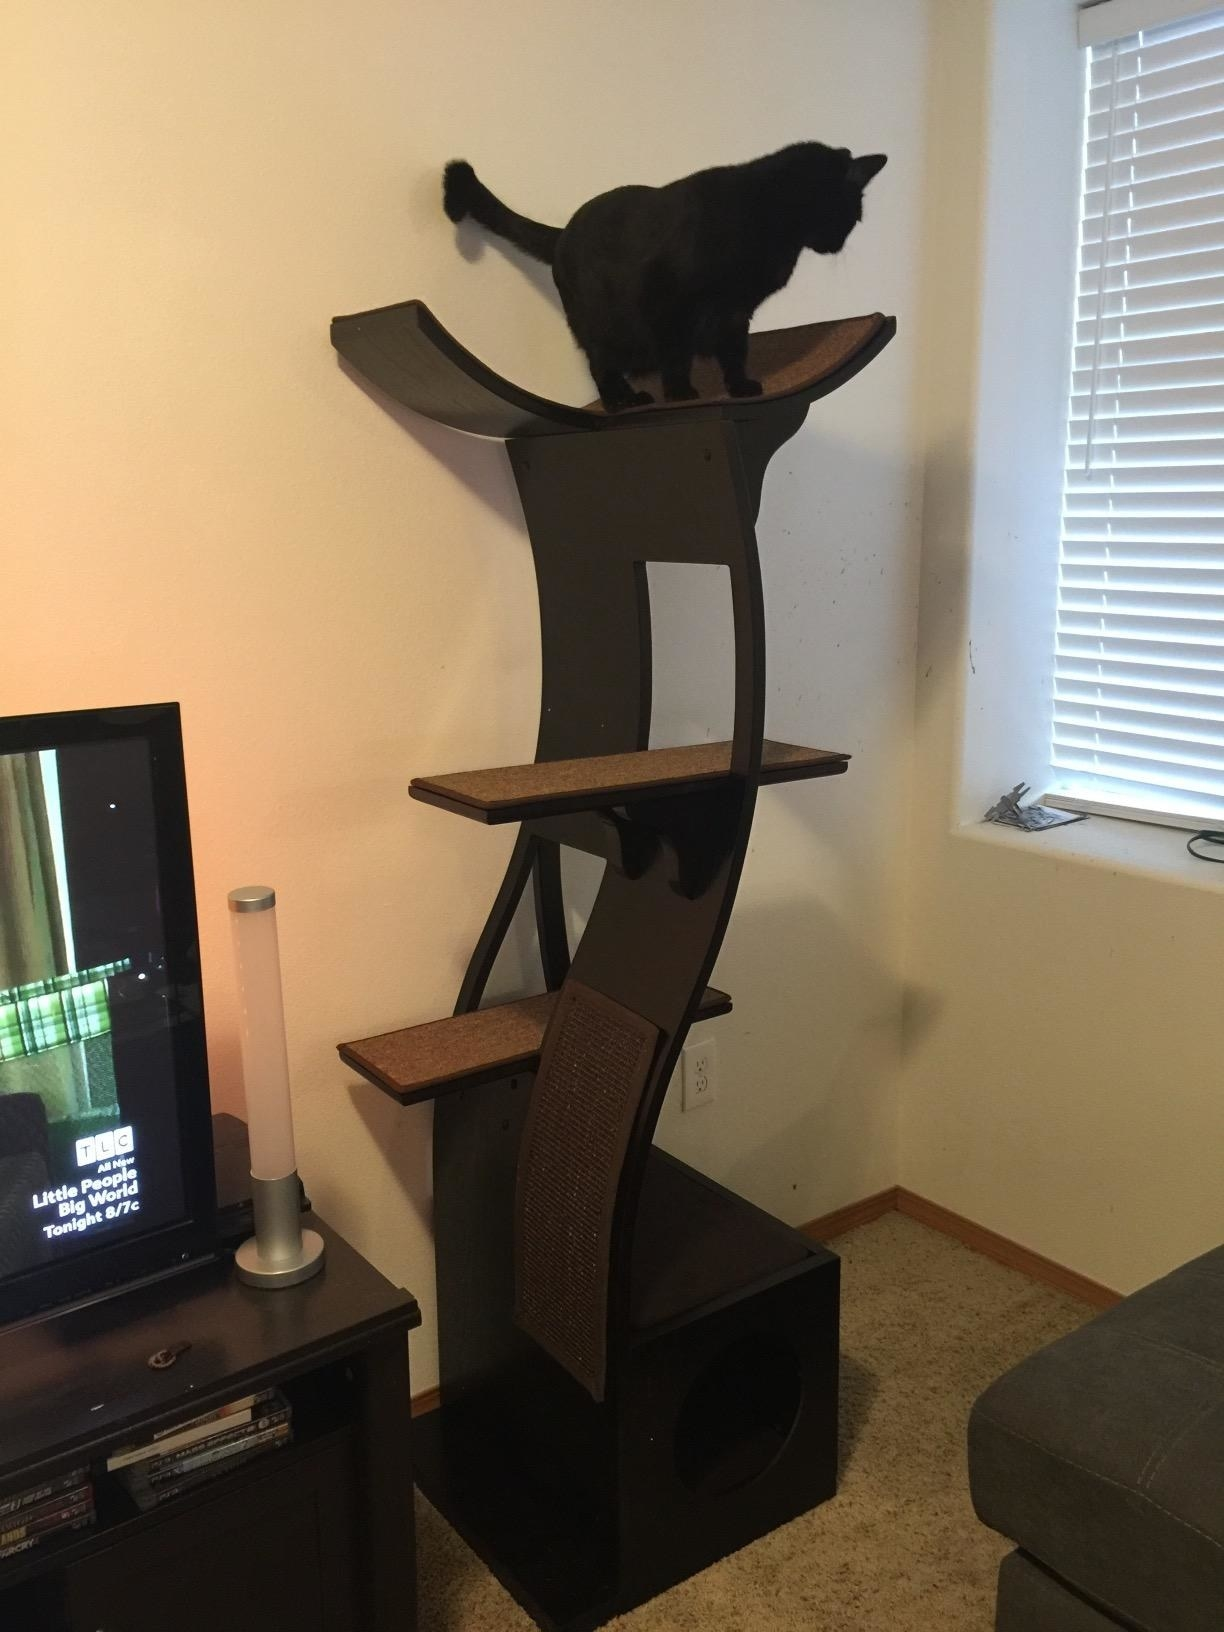 The cat tree, which is dark wood in a curving vertical shape, with scratch pads, platforms, and a hideout built in